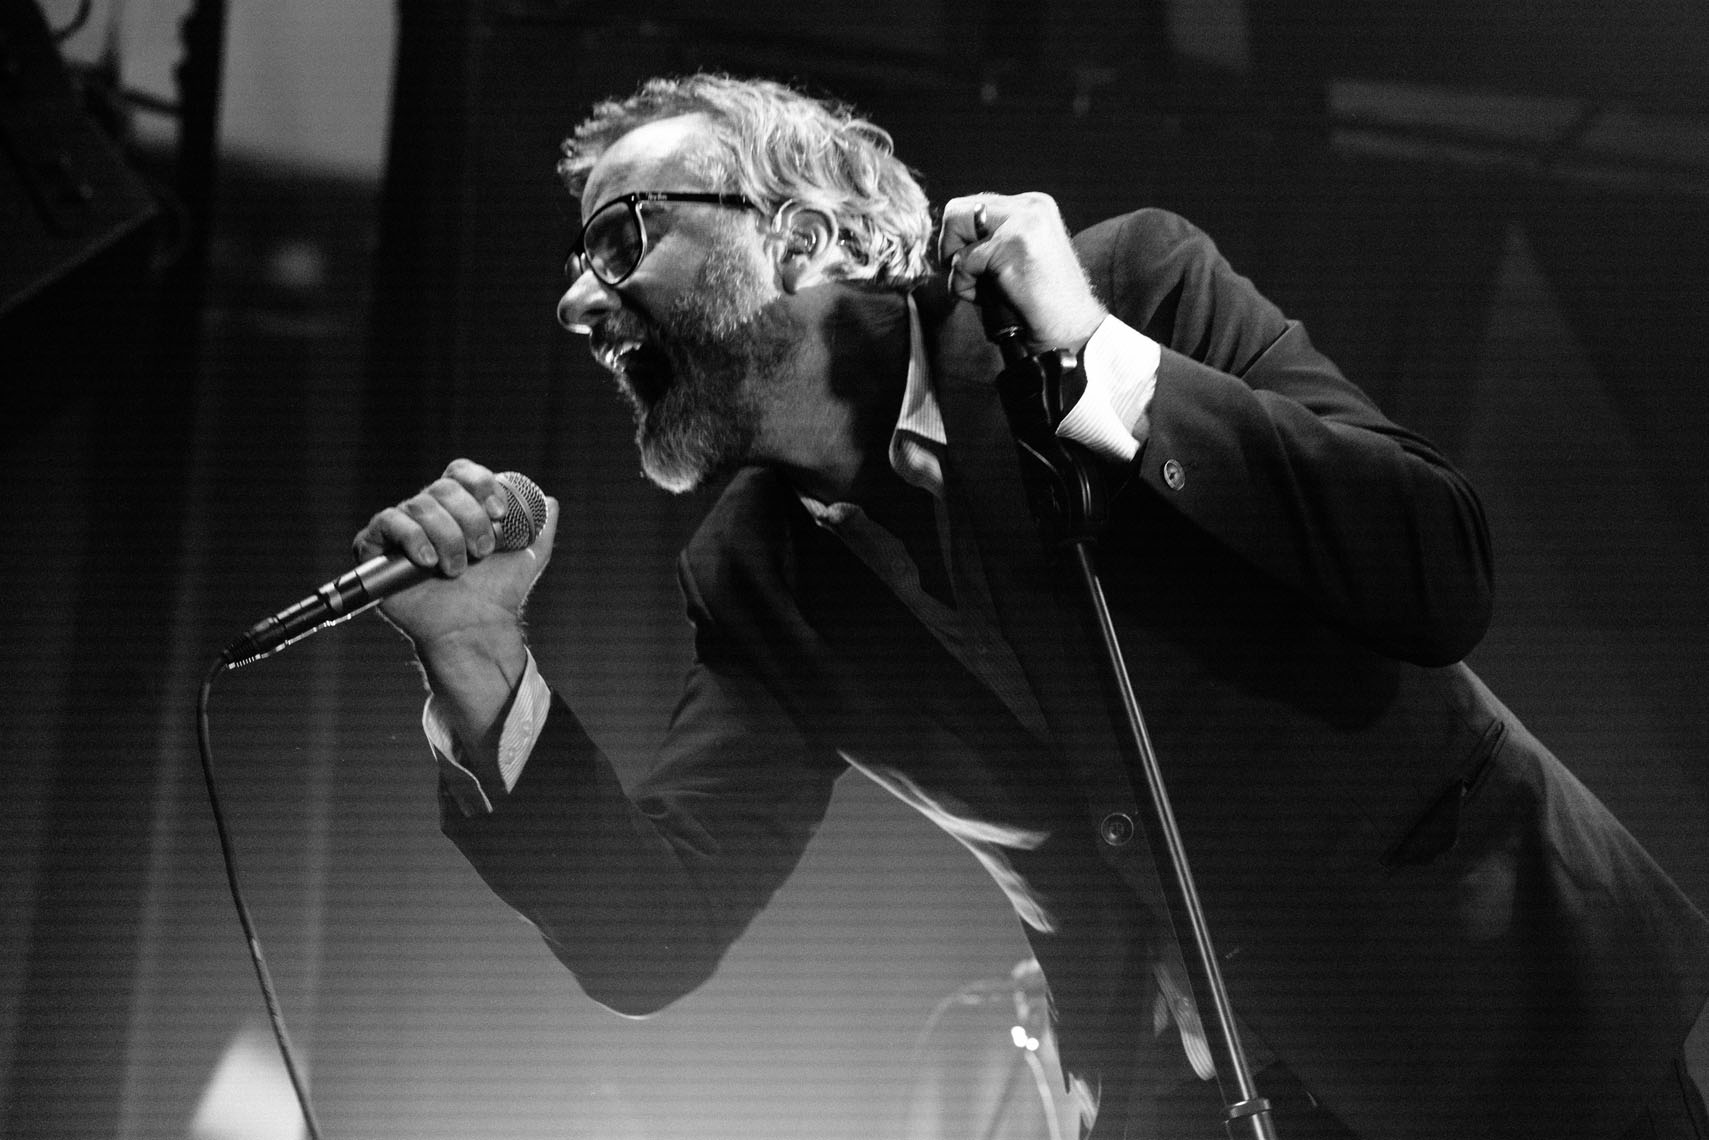 Matt Berninger live at Union Transfer